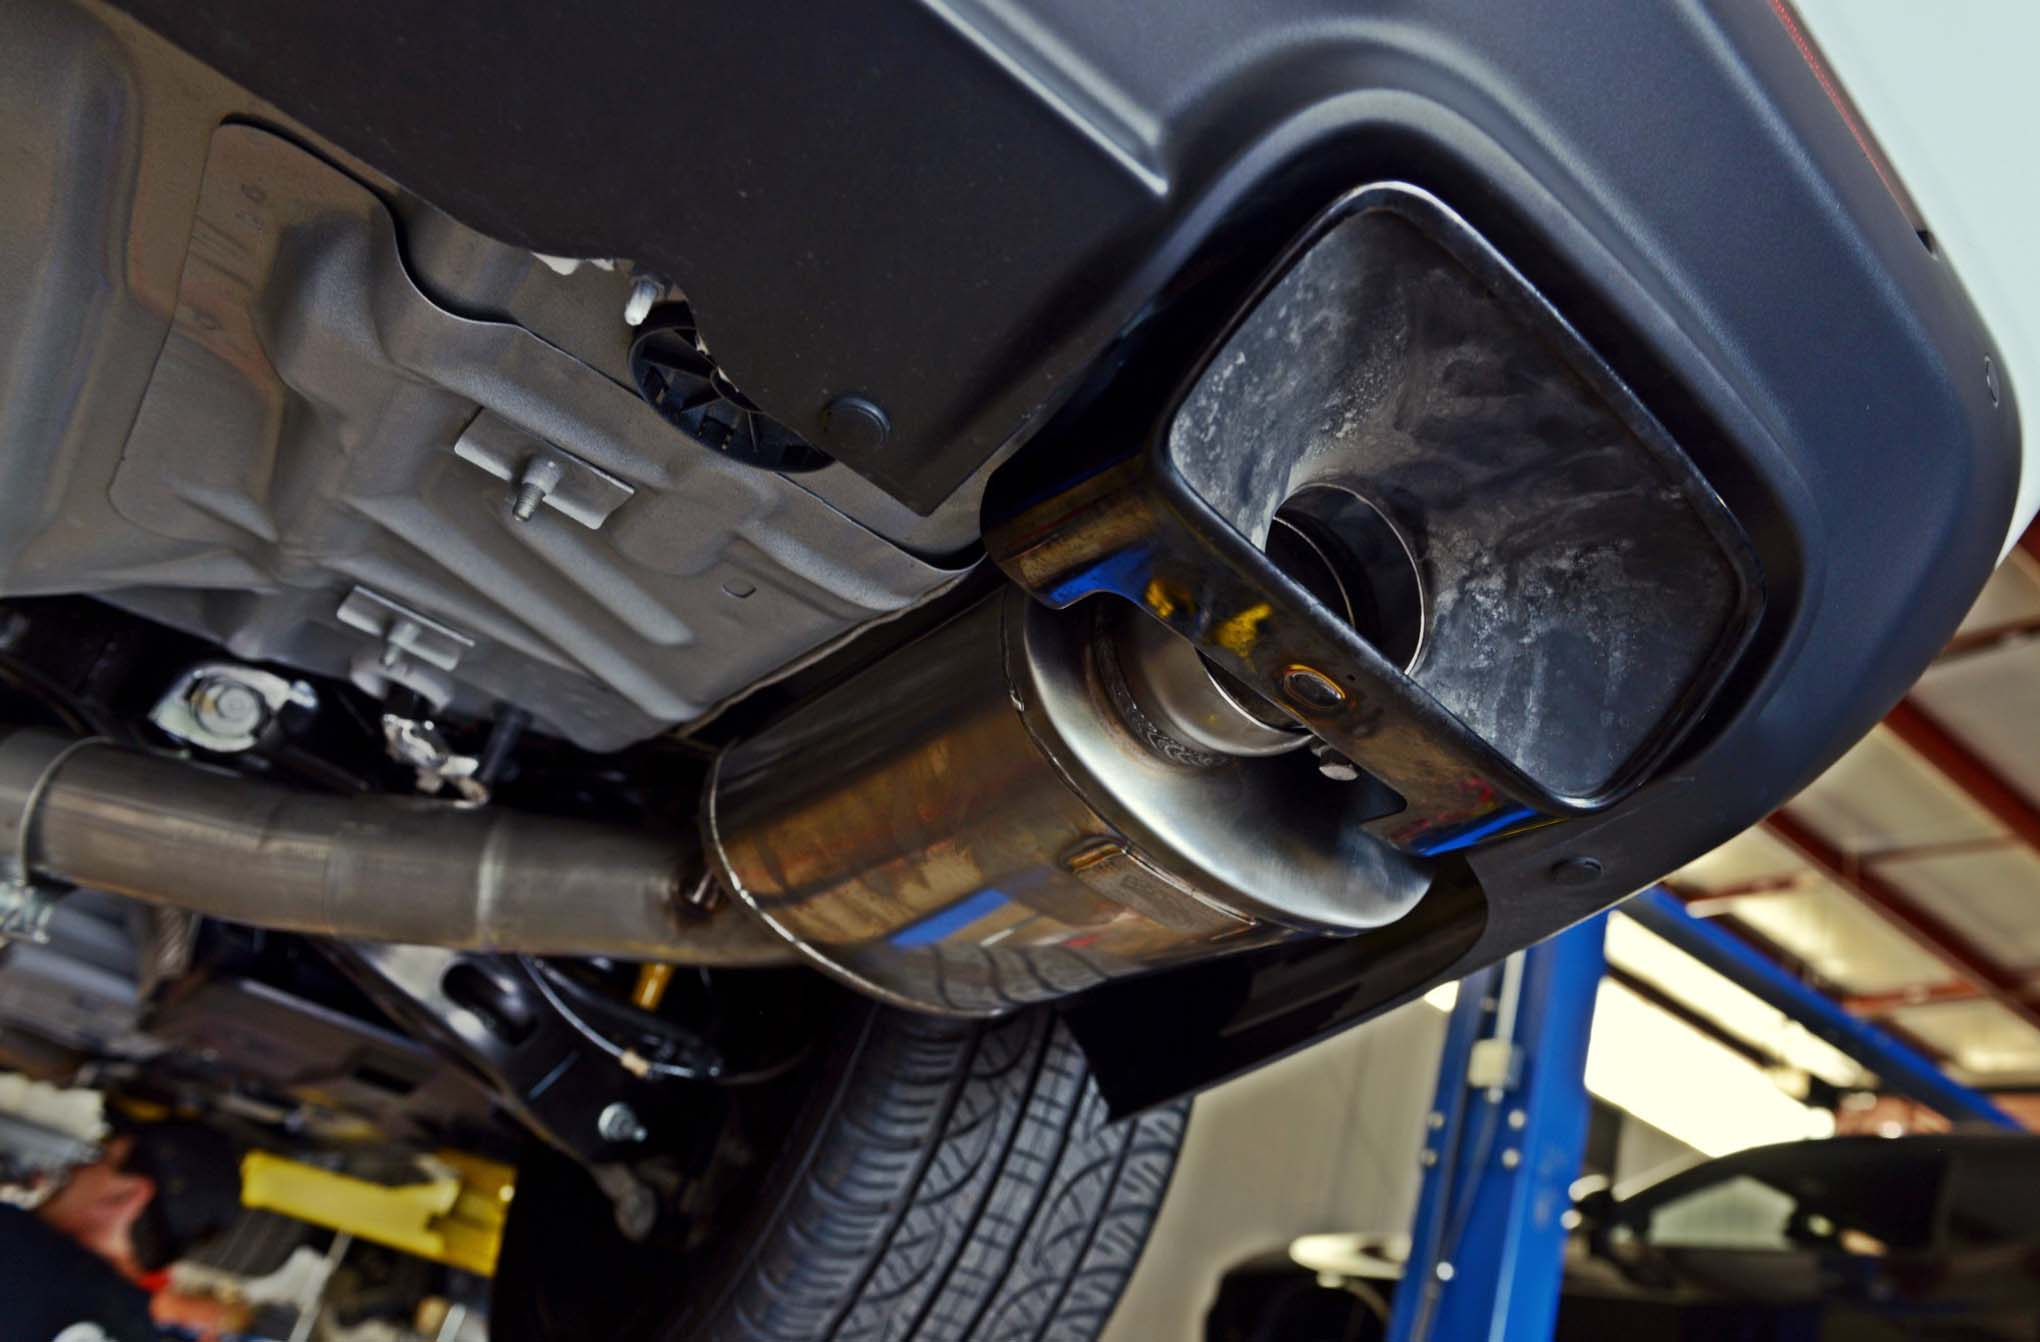 Original exhaust tips were reused for this application. Why not? They do the job and look sharp doing it.